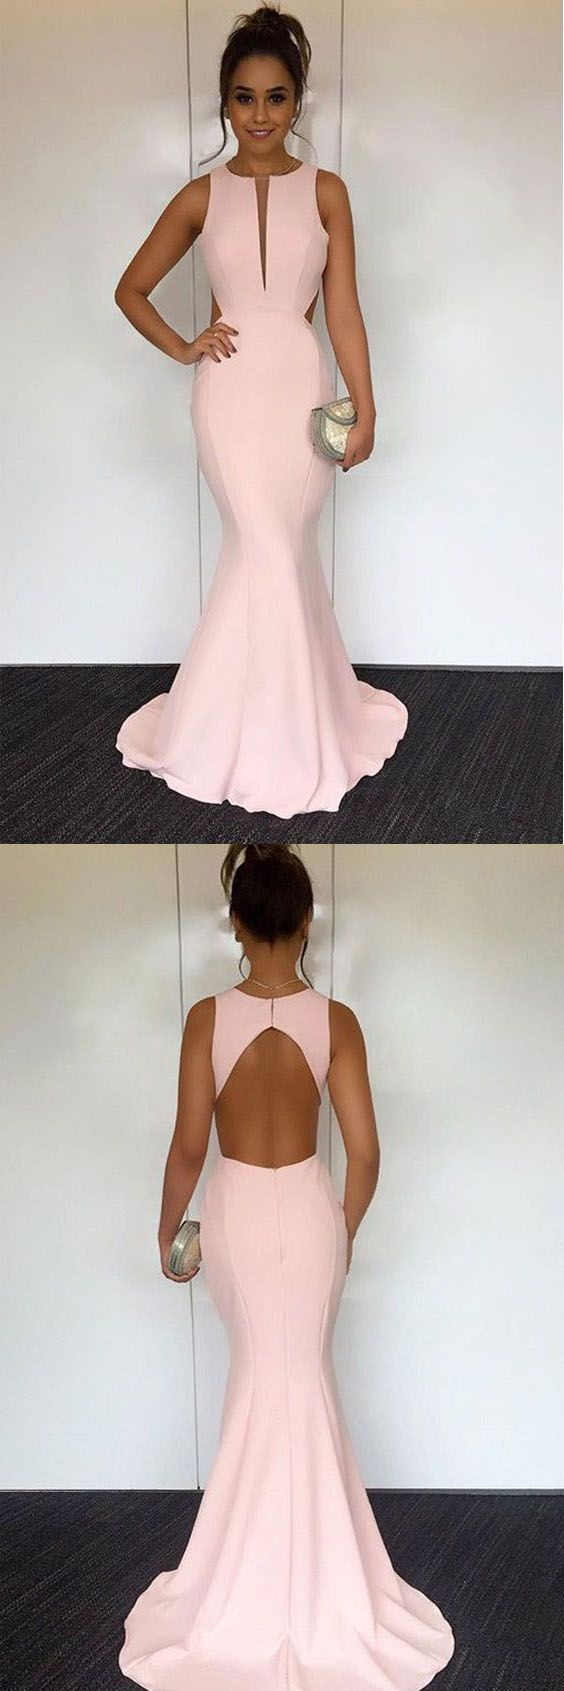 Mermaid pink prom party dresses with open back fashion formal